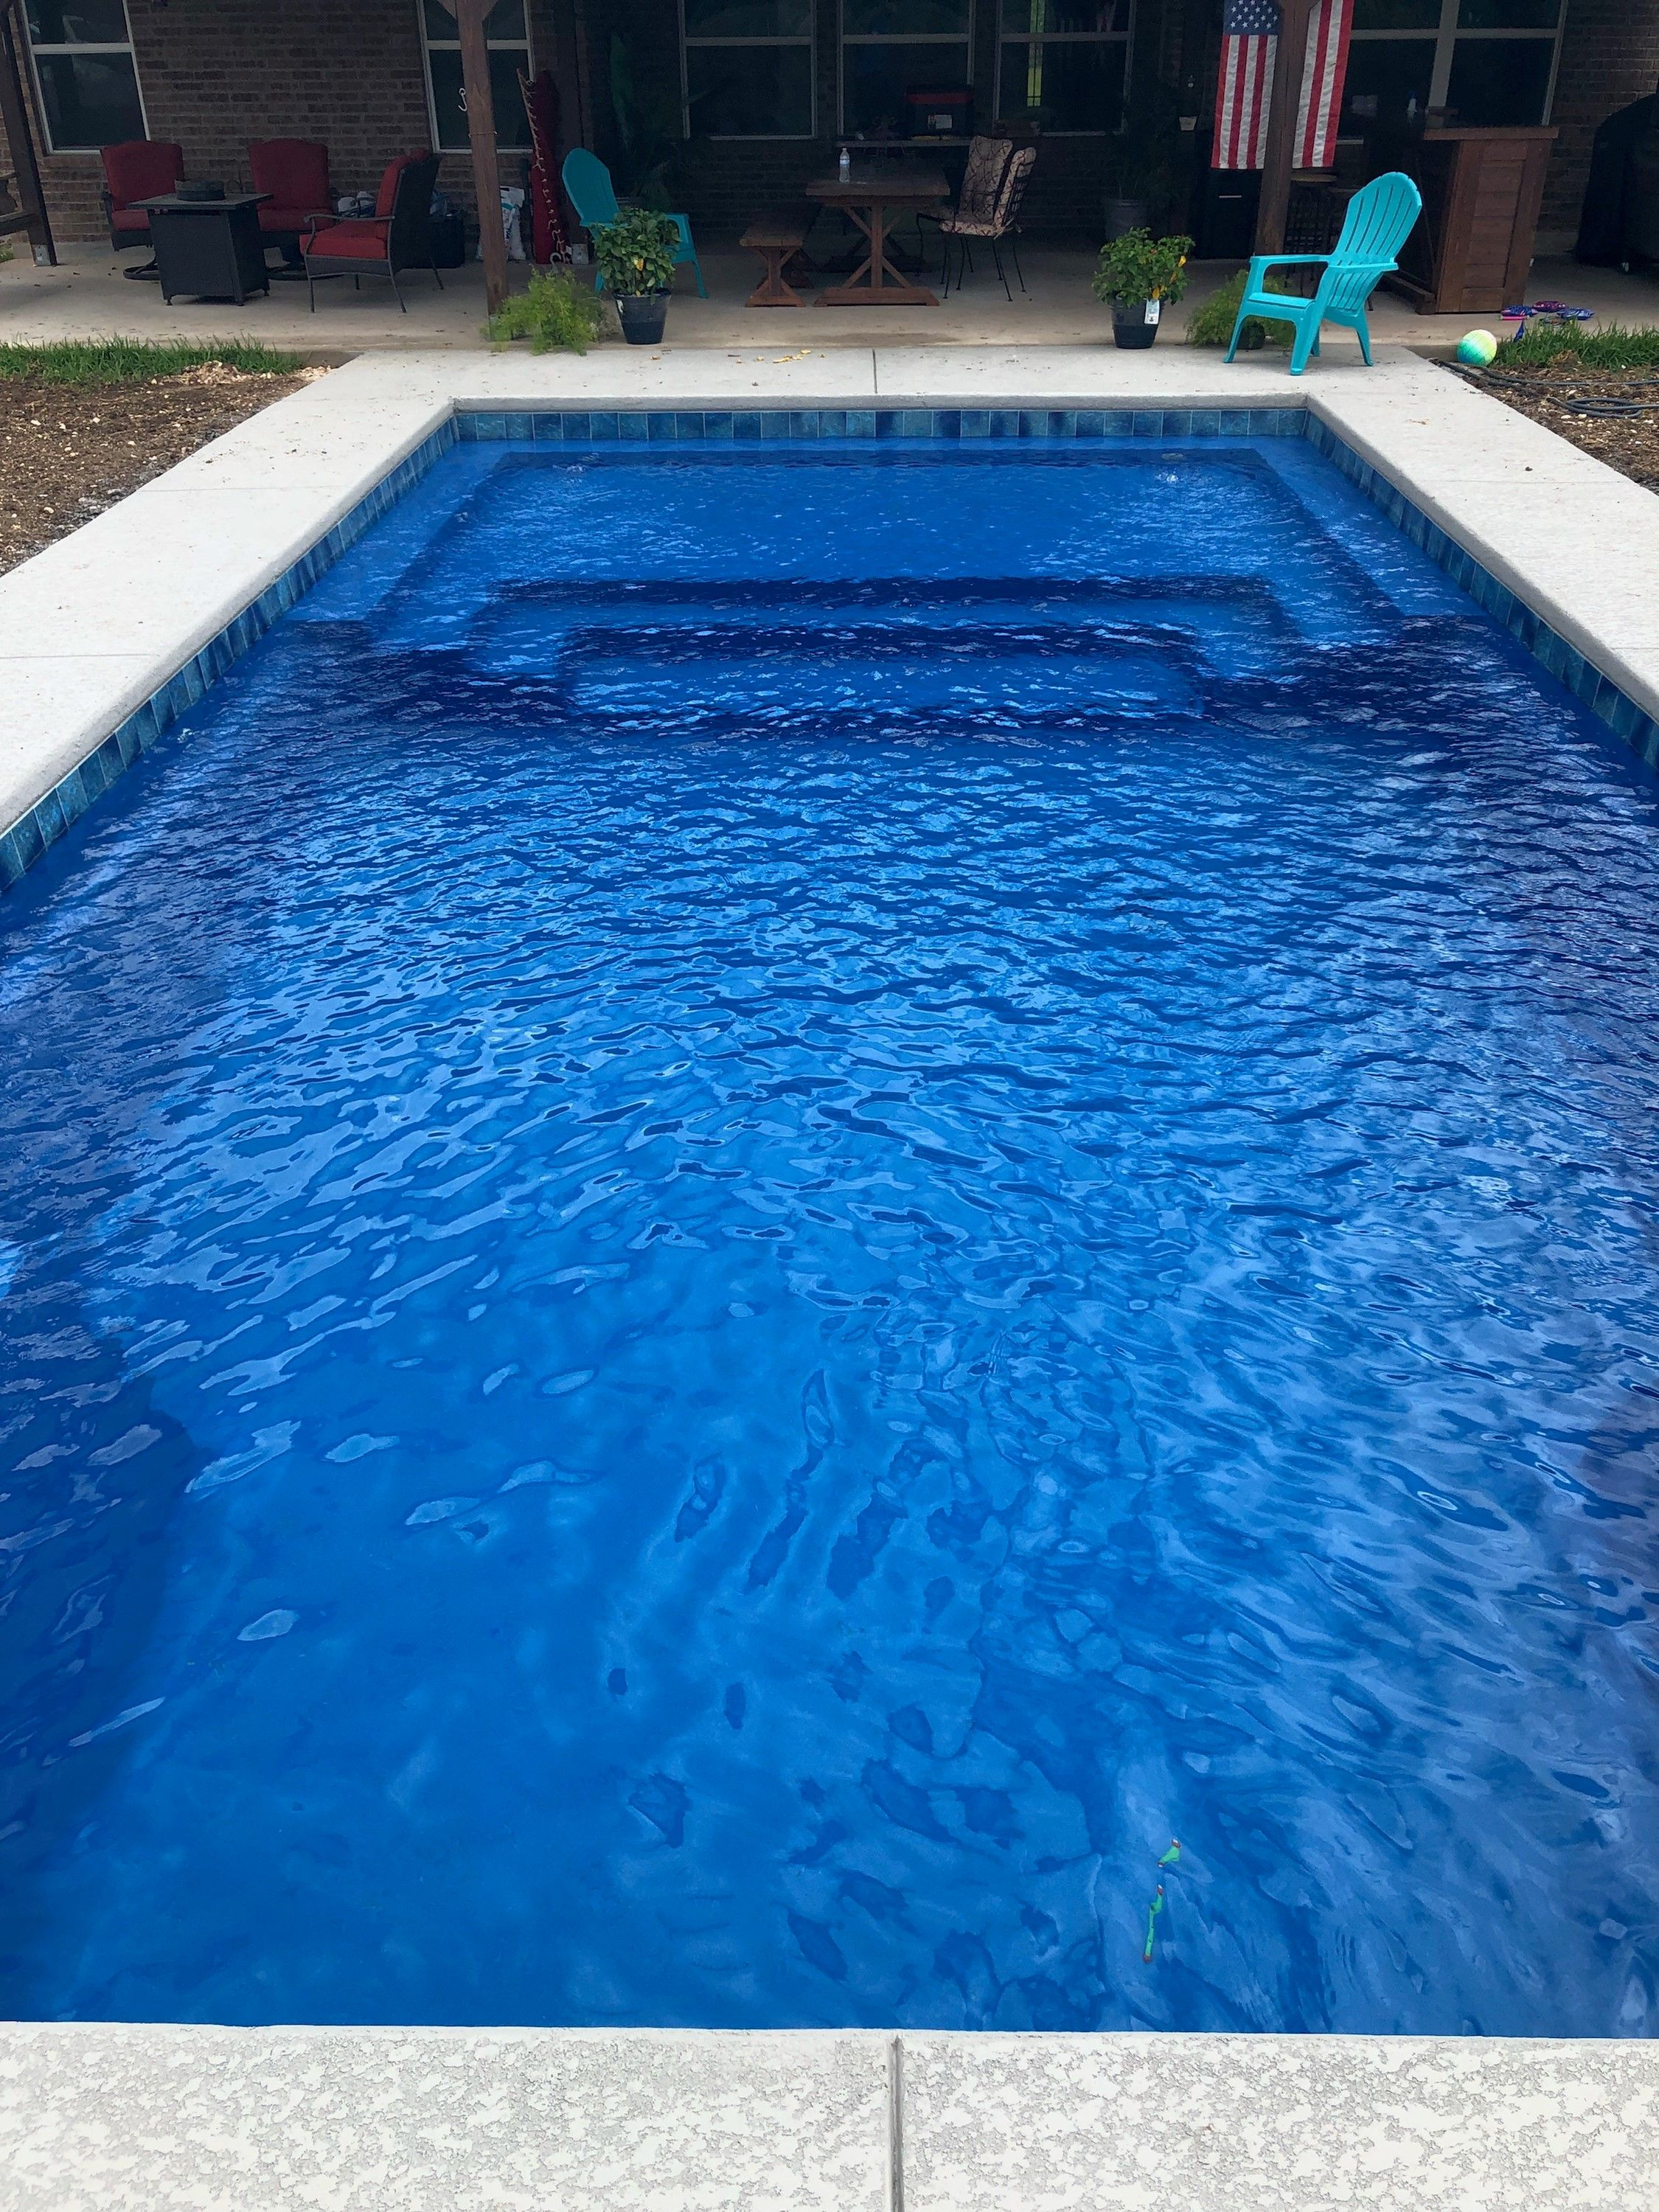 Imagine Pools Newest Design The Illusion Is Quickly Becoming One Of Our Most Popular Designs And Here S More P Fiberglass Swimming Pools Pool Swimming Pools